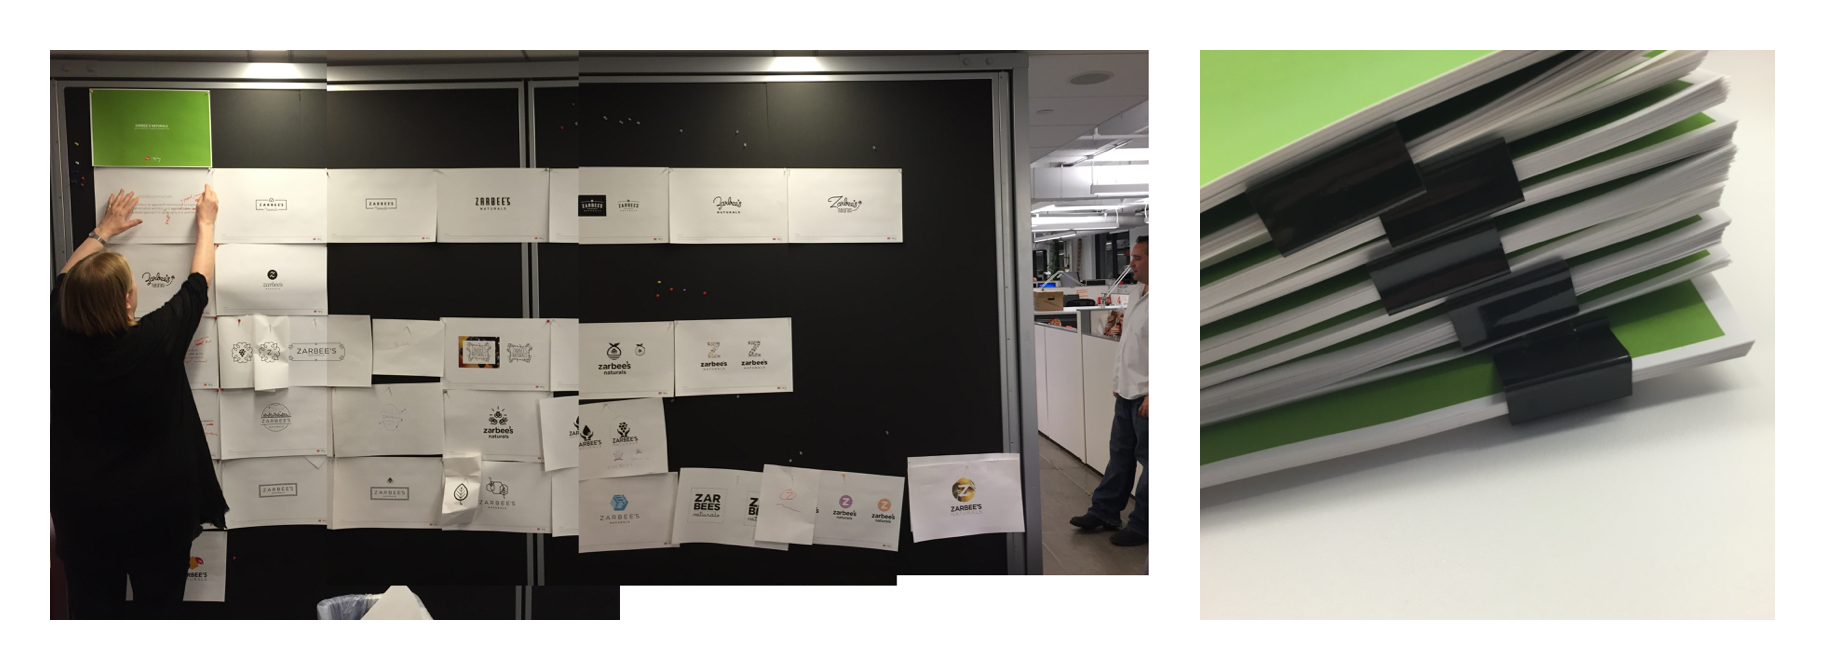 Photo showing logo concepts pinned up on blackboard in office